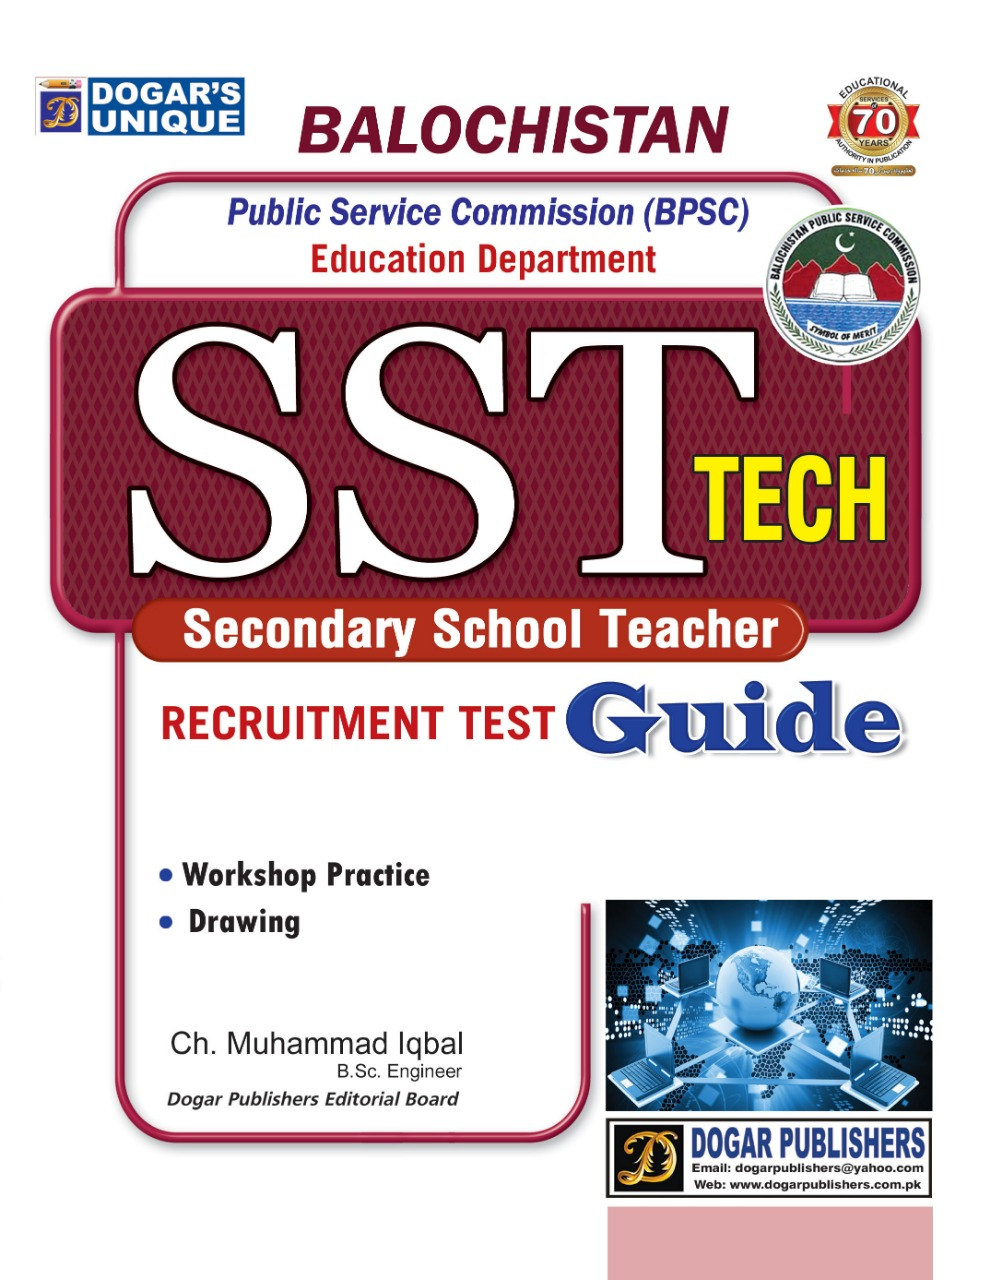 Balochistan Public Service Commission (BPSC) Sst Tech Secondary School Teacher Recruitment Guide